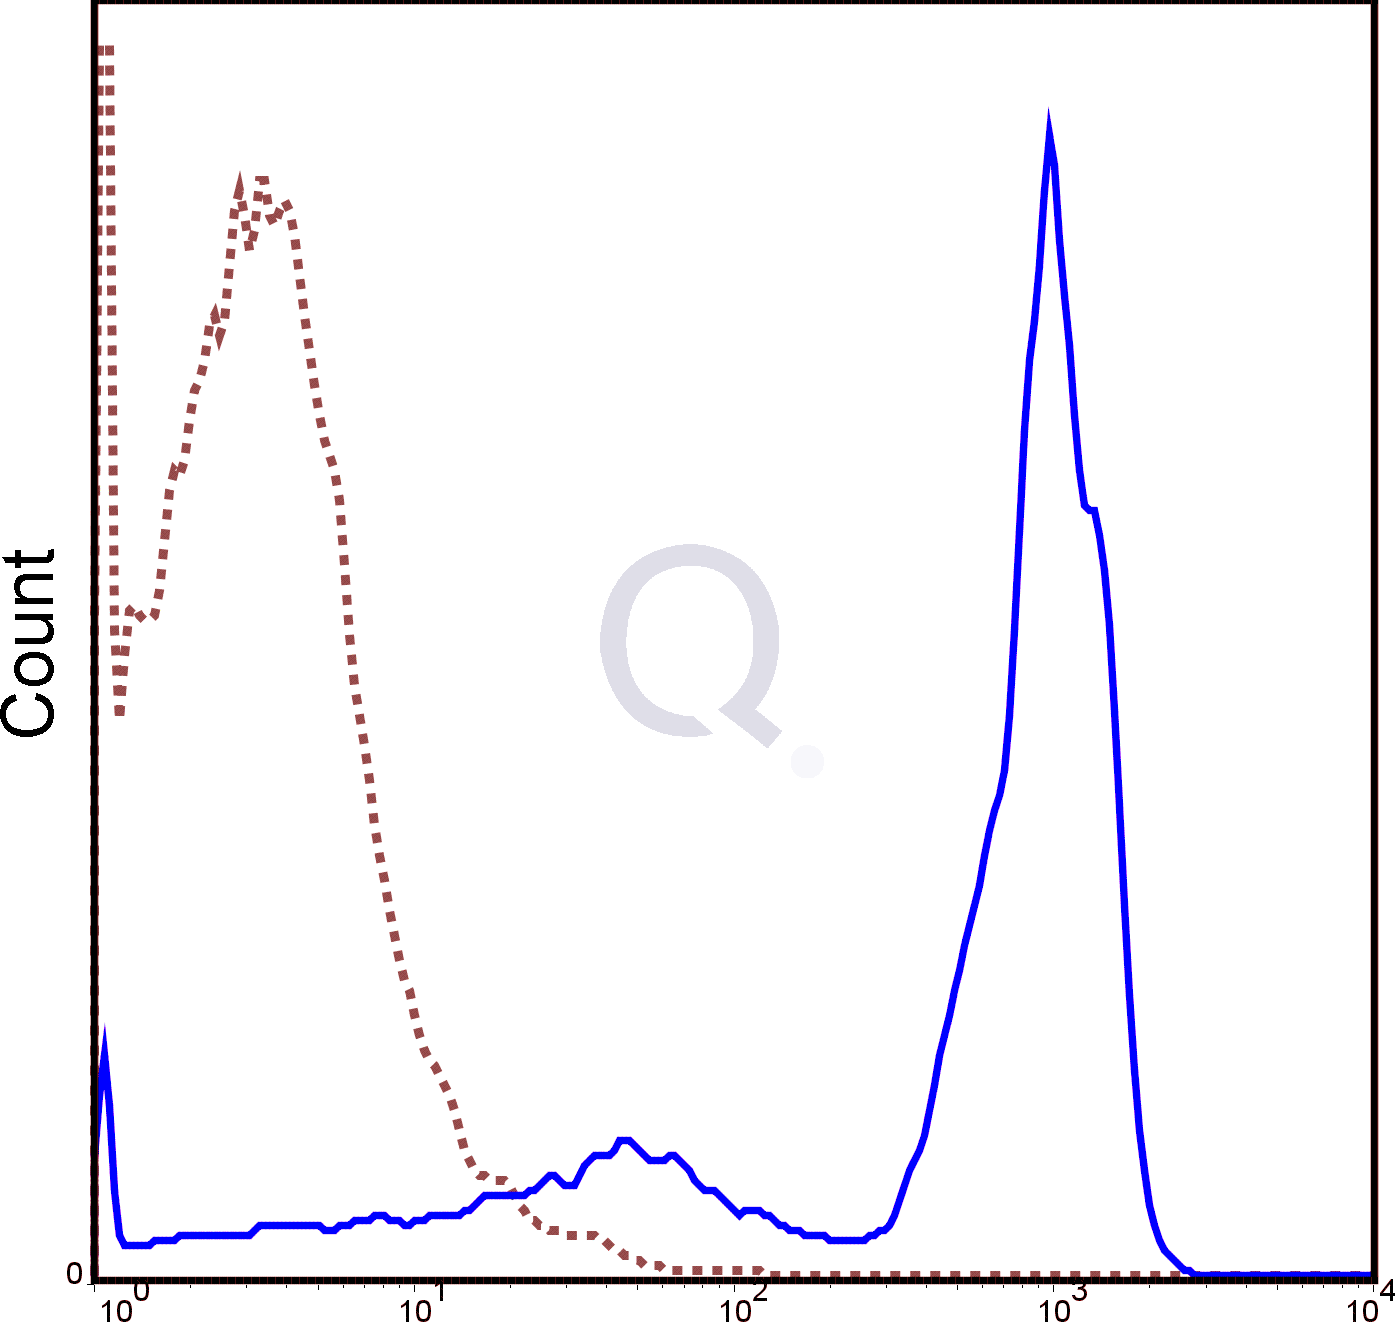 C57Bl/6 splenocytes were stained with 0.5 ug PE Mouse Anti-CD45.2 (QAB43) (solid line) or 0.5 ug PE Mouse IgG2a isotype control (dashed line). Flow Cytometry Data from 10,000 events.